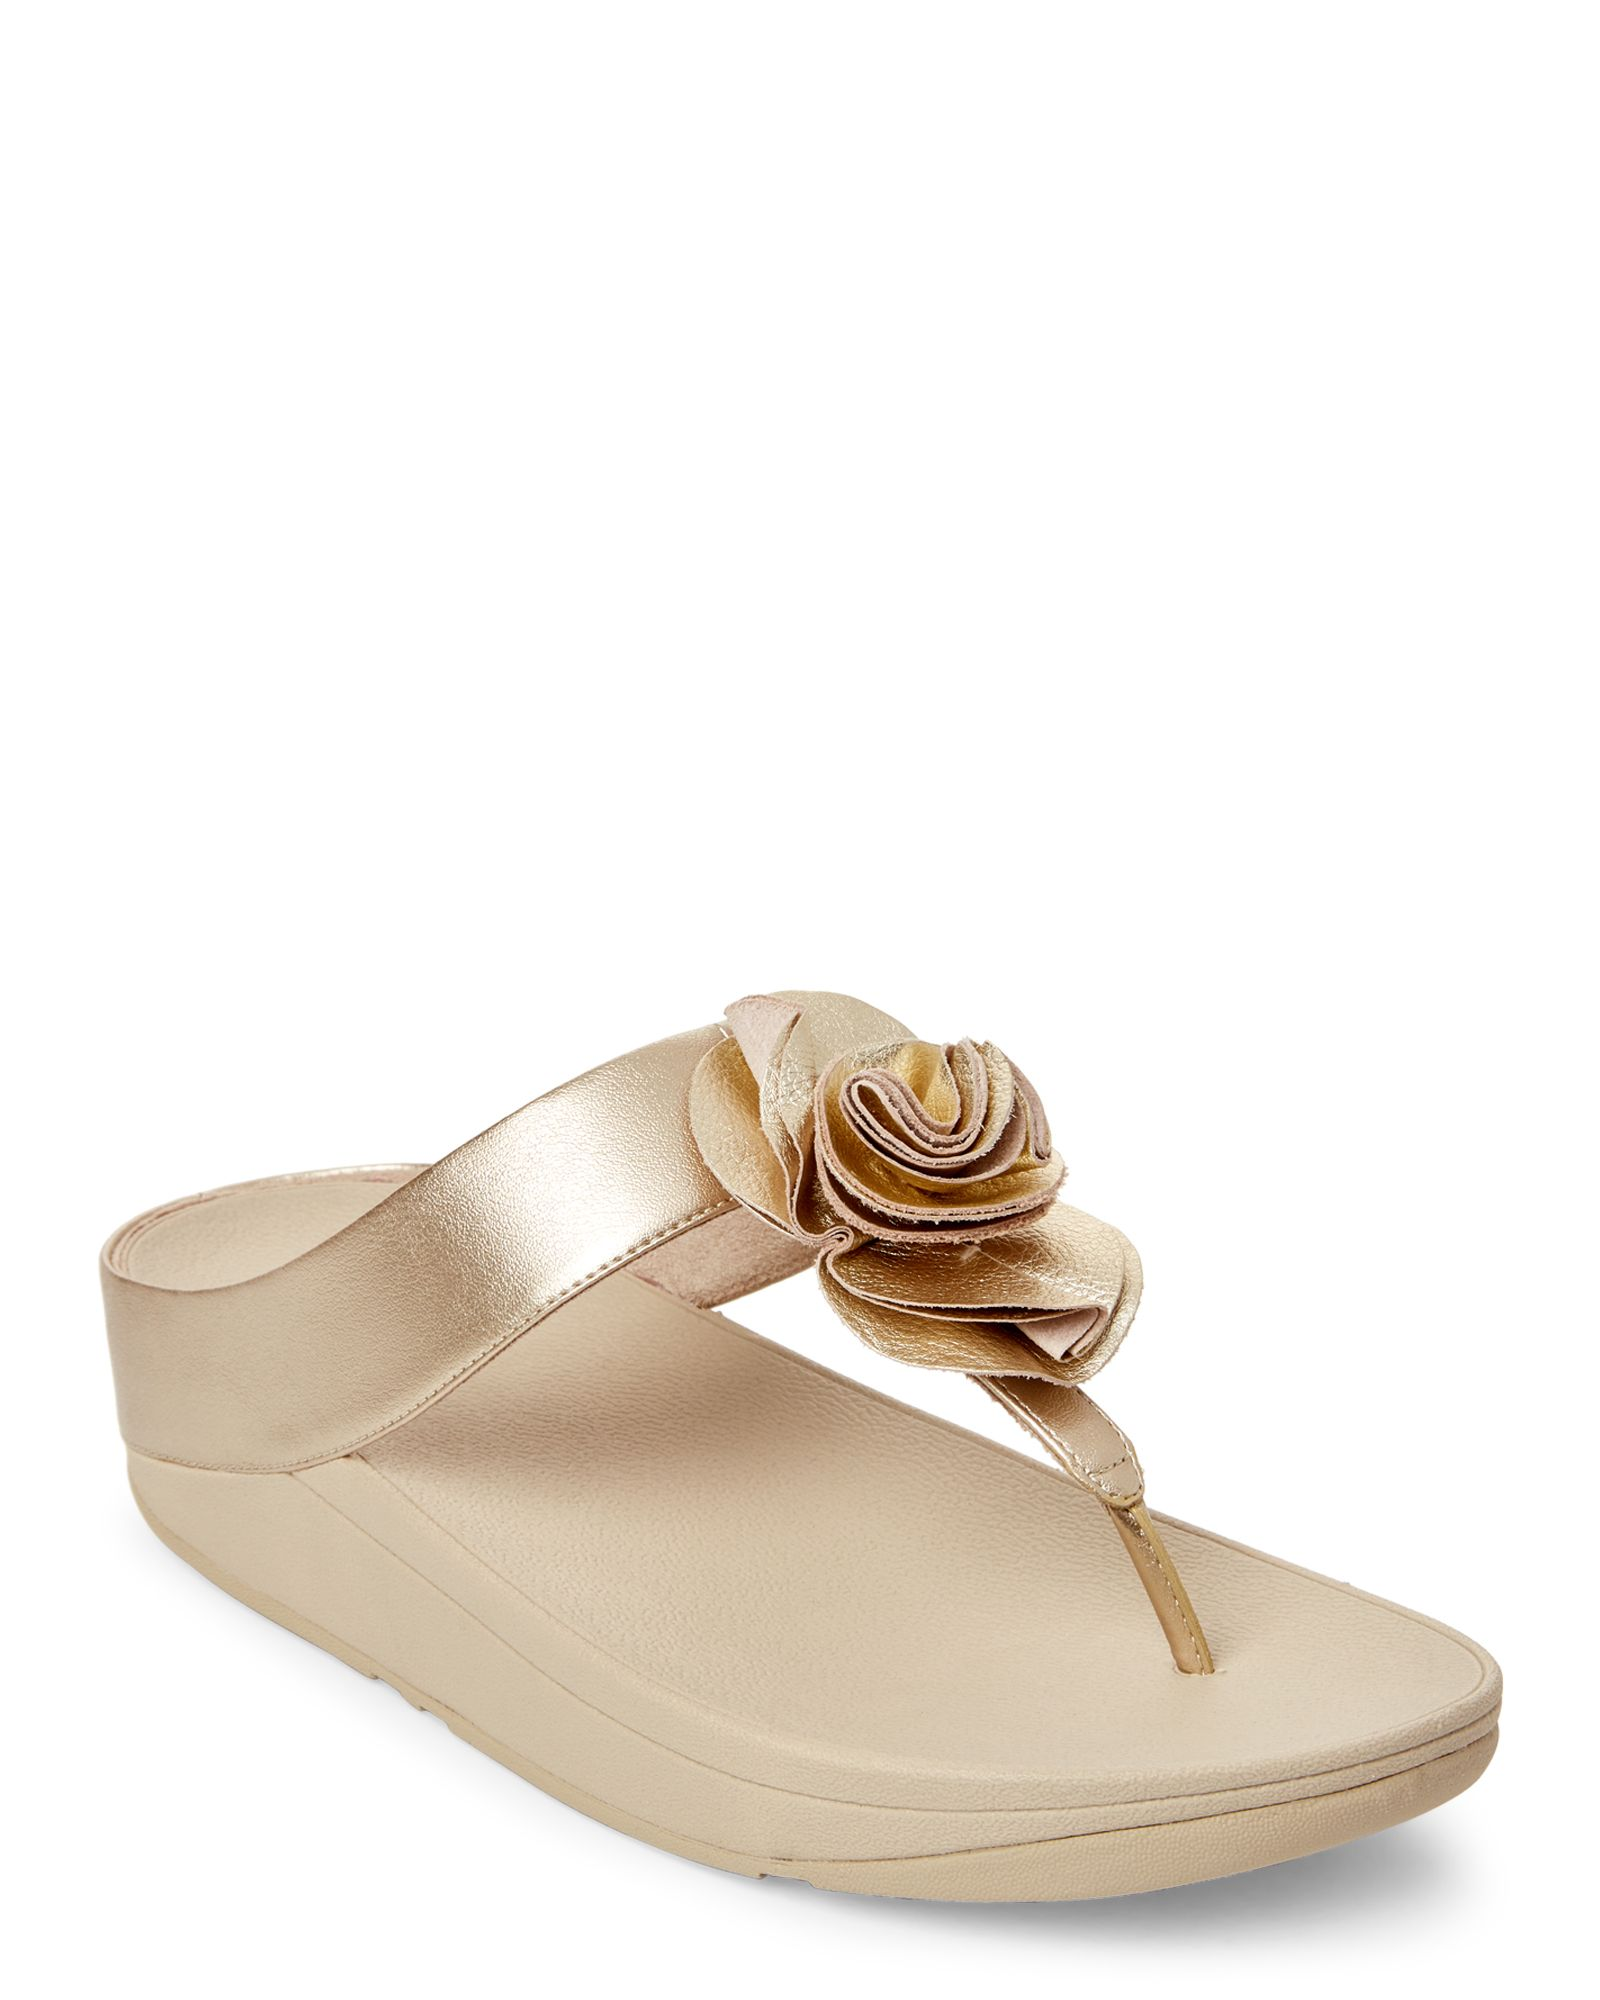 424dd90c1 Pale Gold Florrie Toe-Post Thong Sandals in 2018